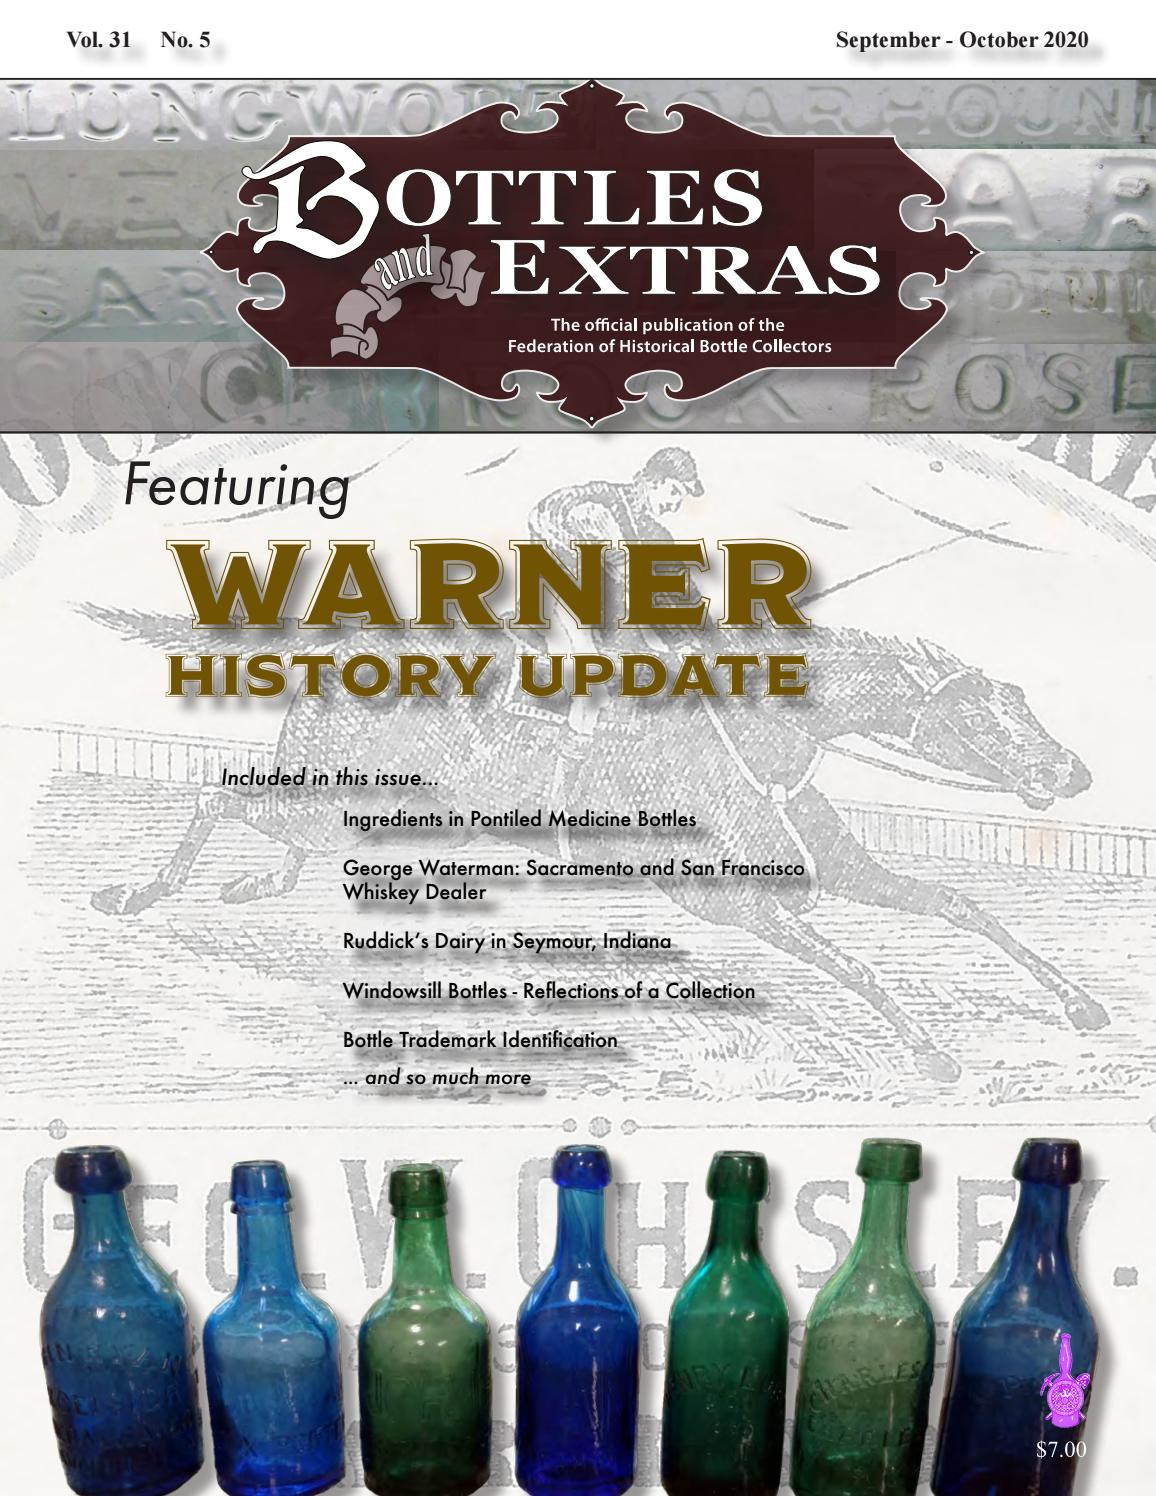 Christmas Bird Count 2020-2022 Fort Collins Co Bottles and Extras   September   October 2020 by Ferdinand Meyer